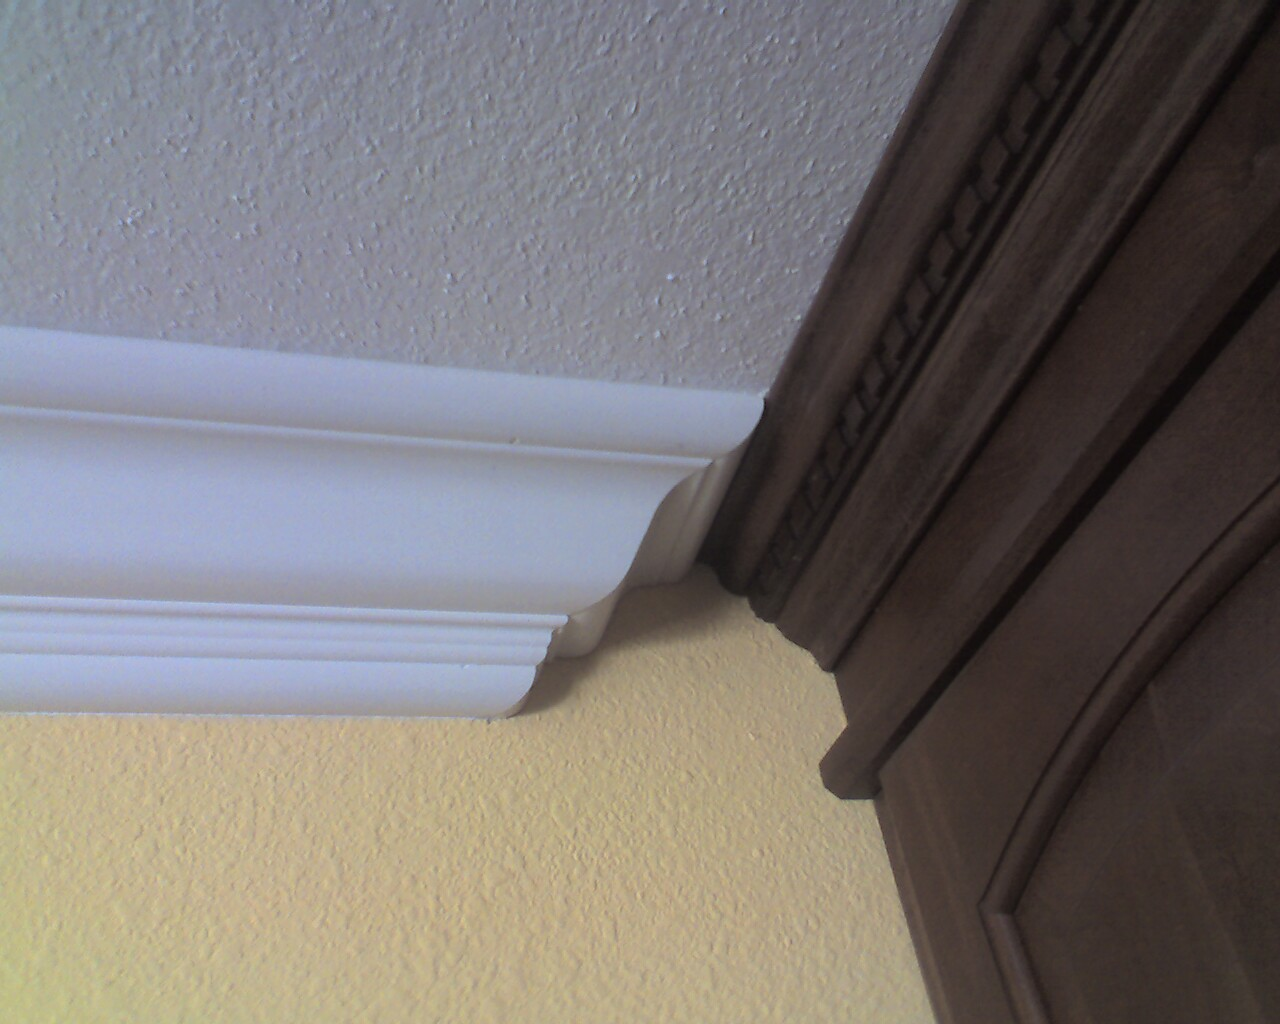 Joining 2 Different Crown Moldings - Finish Carpentry - Contractor ...